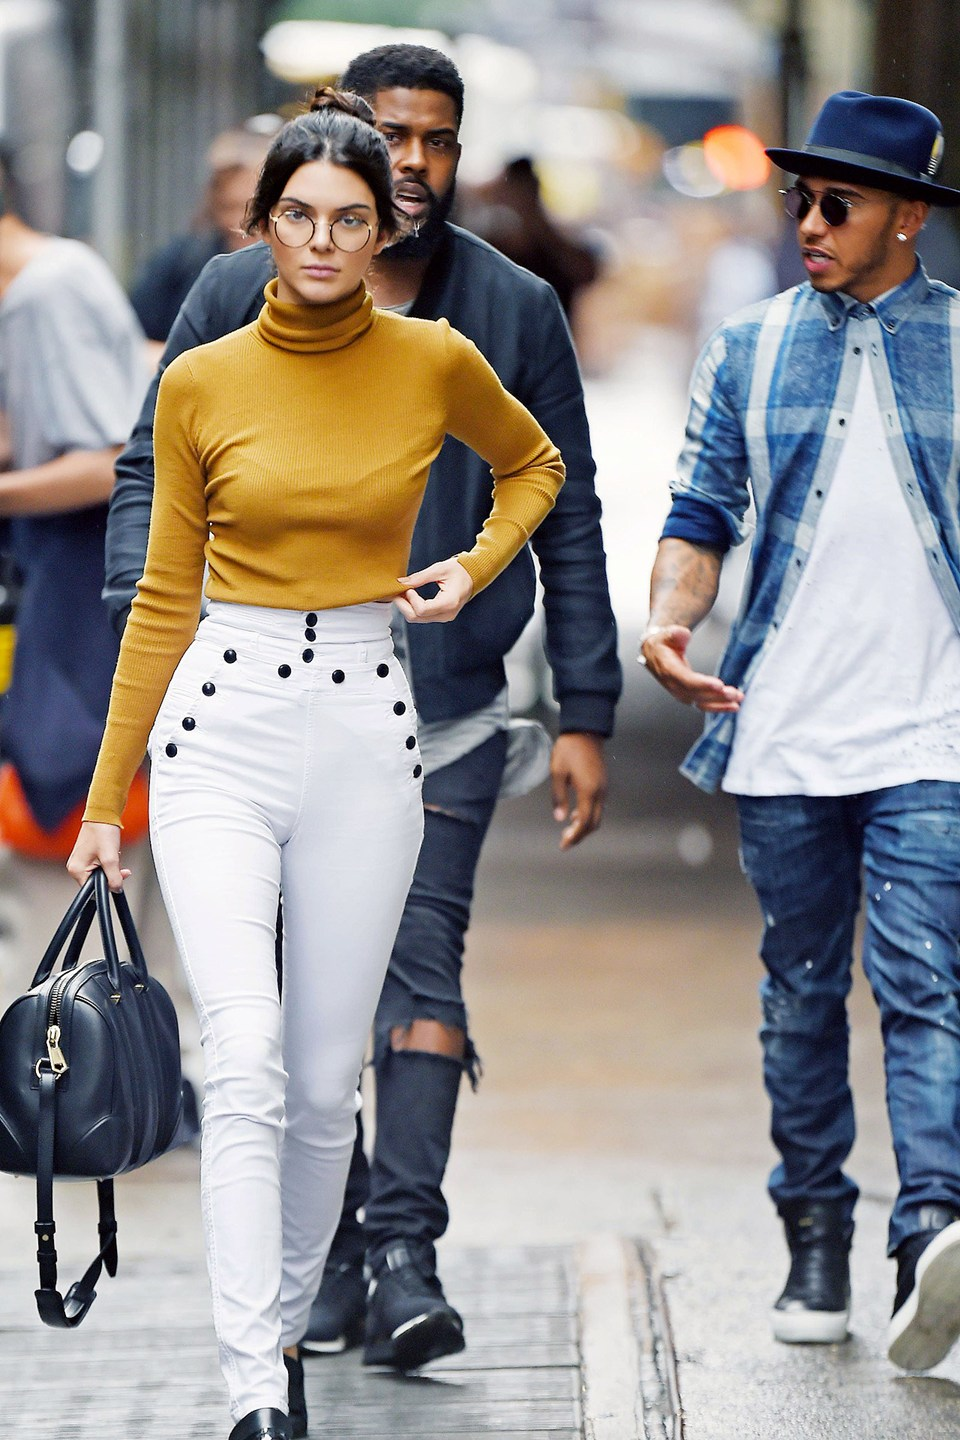 is lewis hamilton and kendall jenner dating